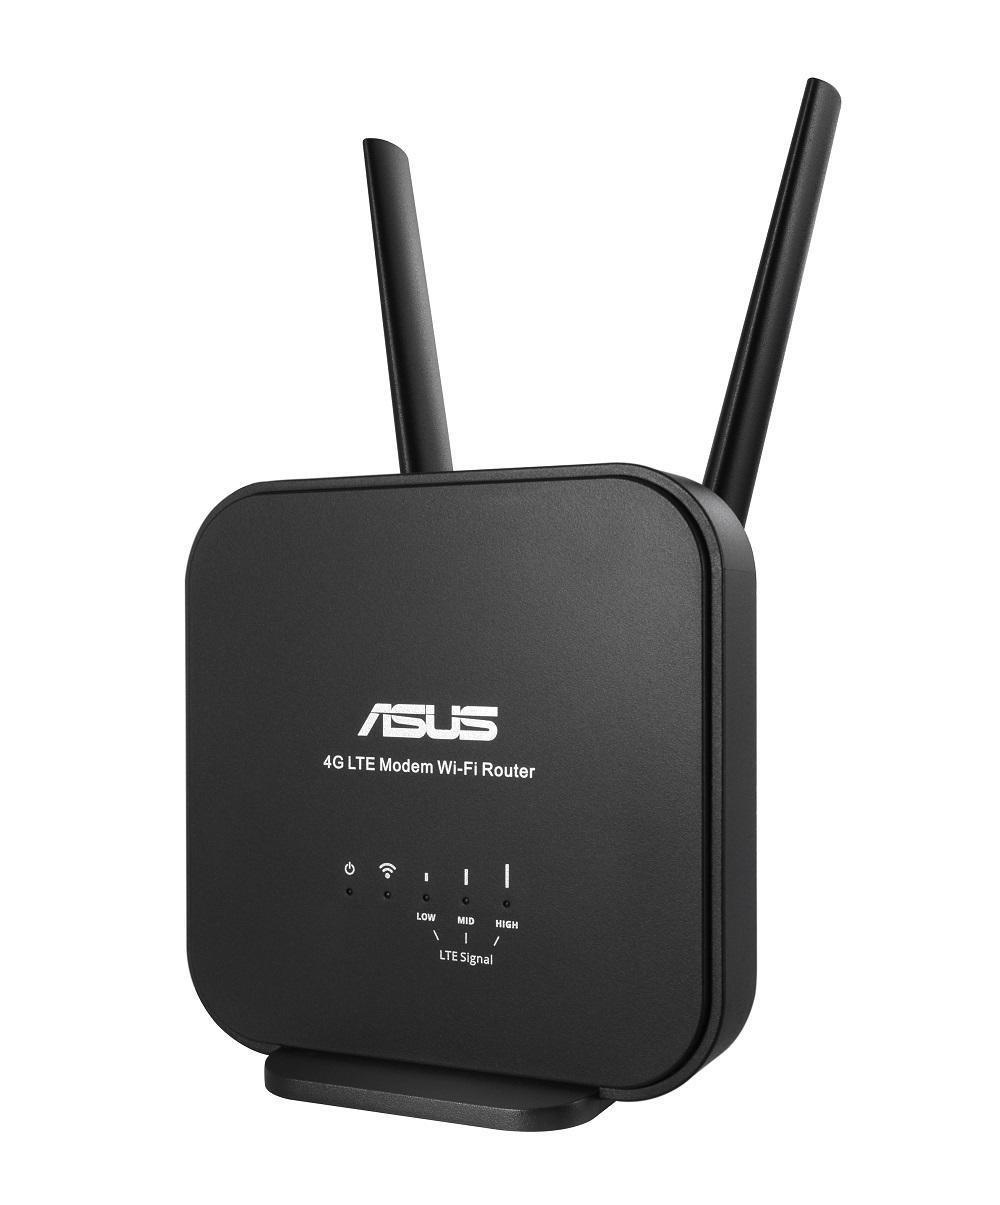 ASUS 4G-N12 B1 Wireless-N300 LTE Modem-Router